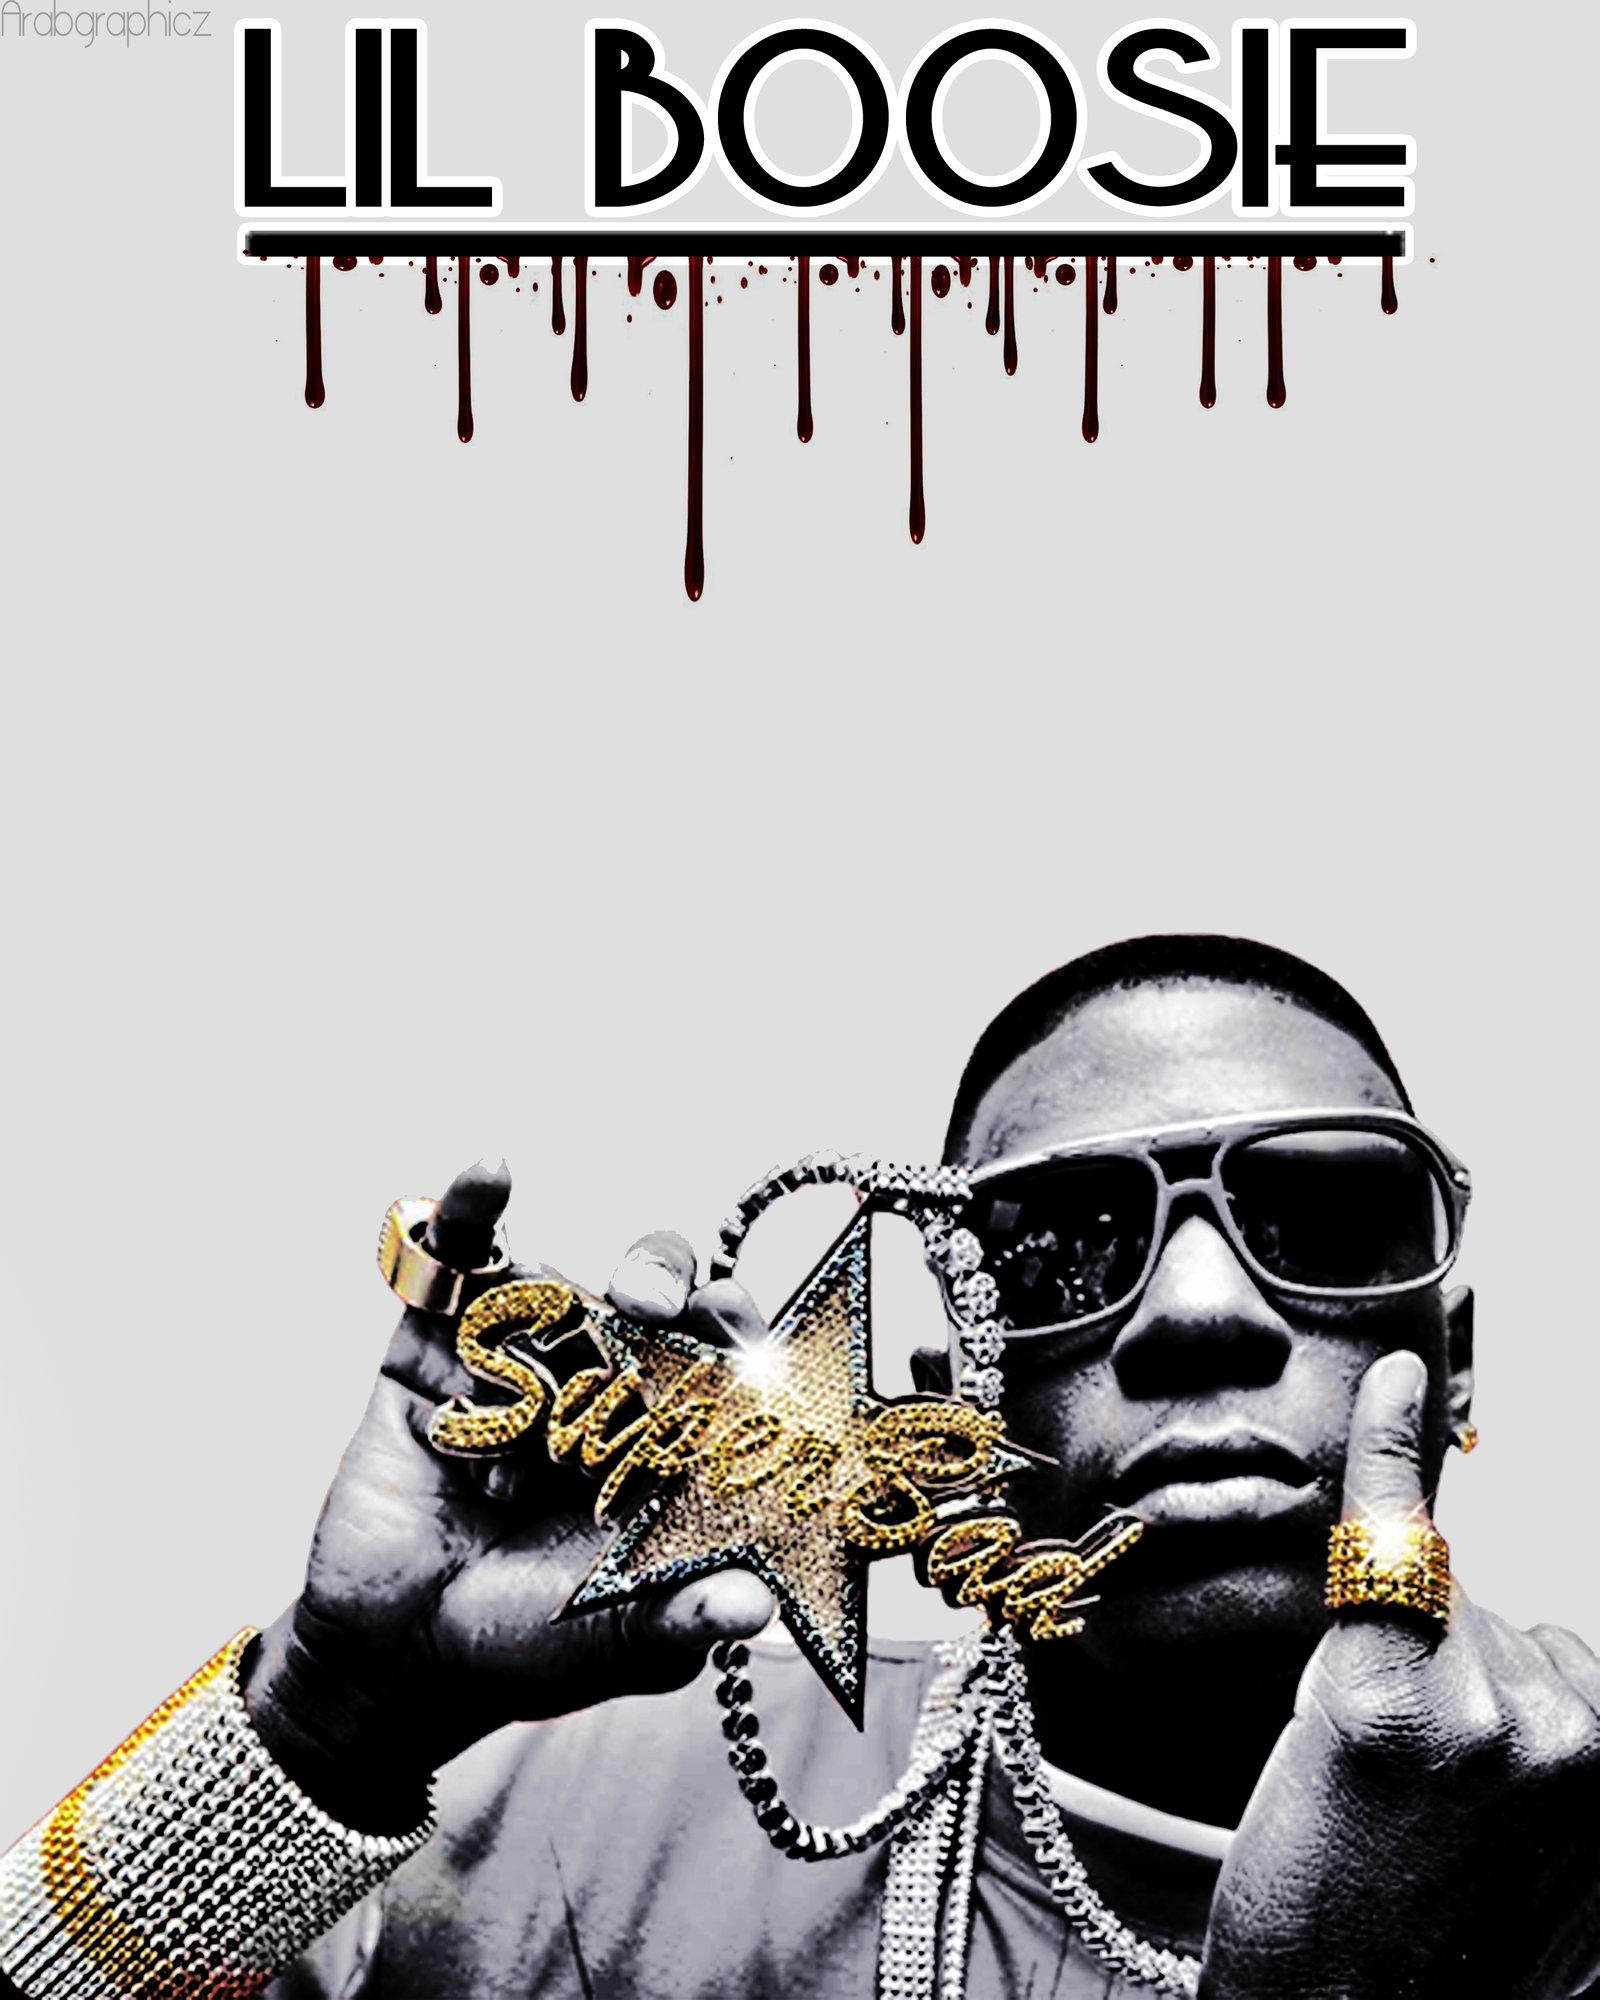 Lil Boosie Wallpapers Wallpaper Cave